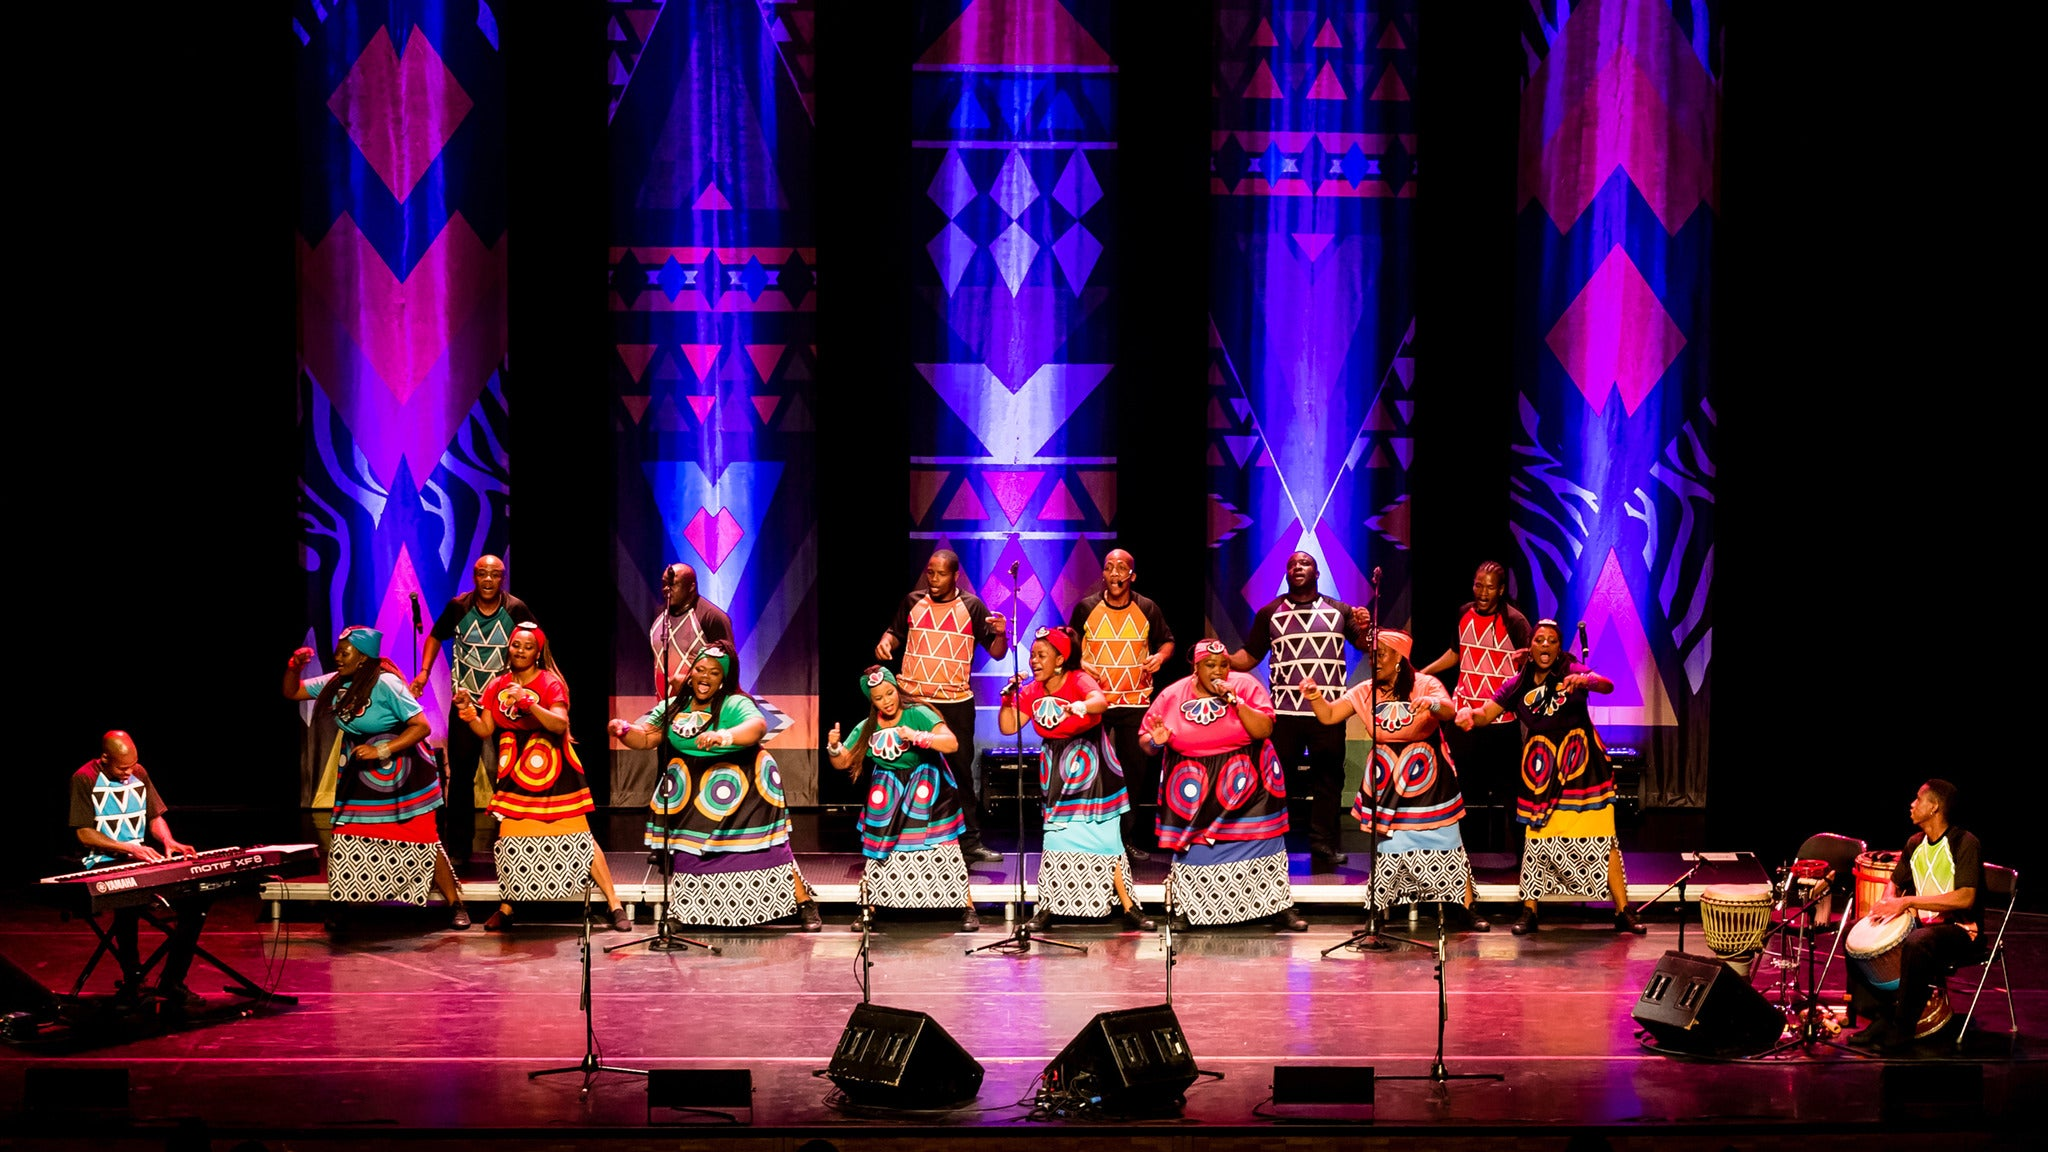 Soweto Gospel Choir at Count Basie Center for the Arts - Red Bank, NJ 07701